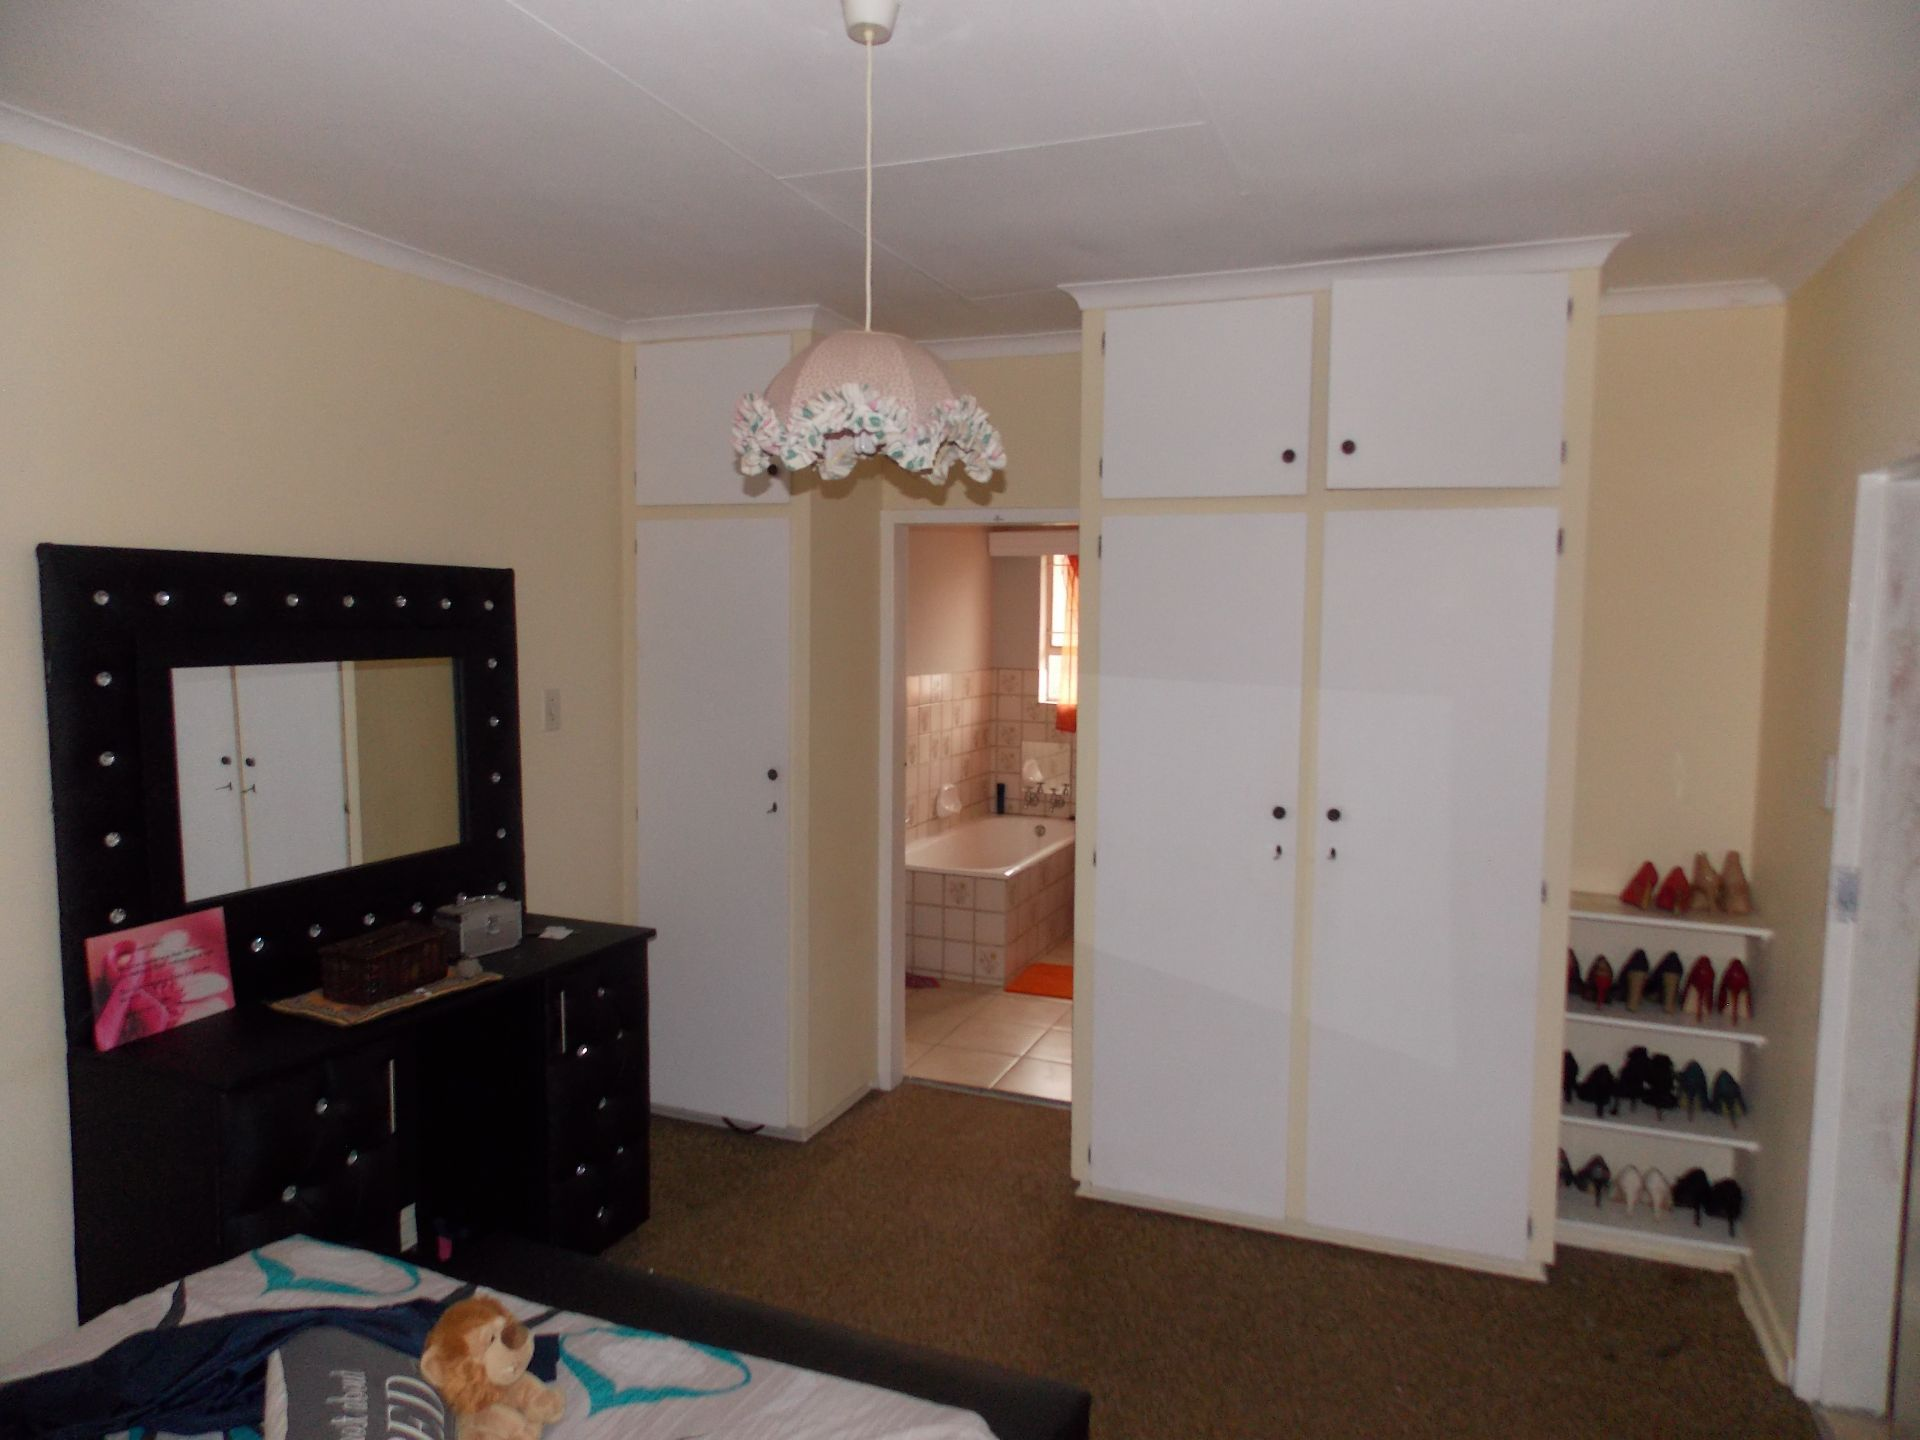 Potchefstroom Central property for sale. Ref No: 13414401. Picture no 19